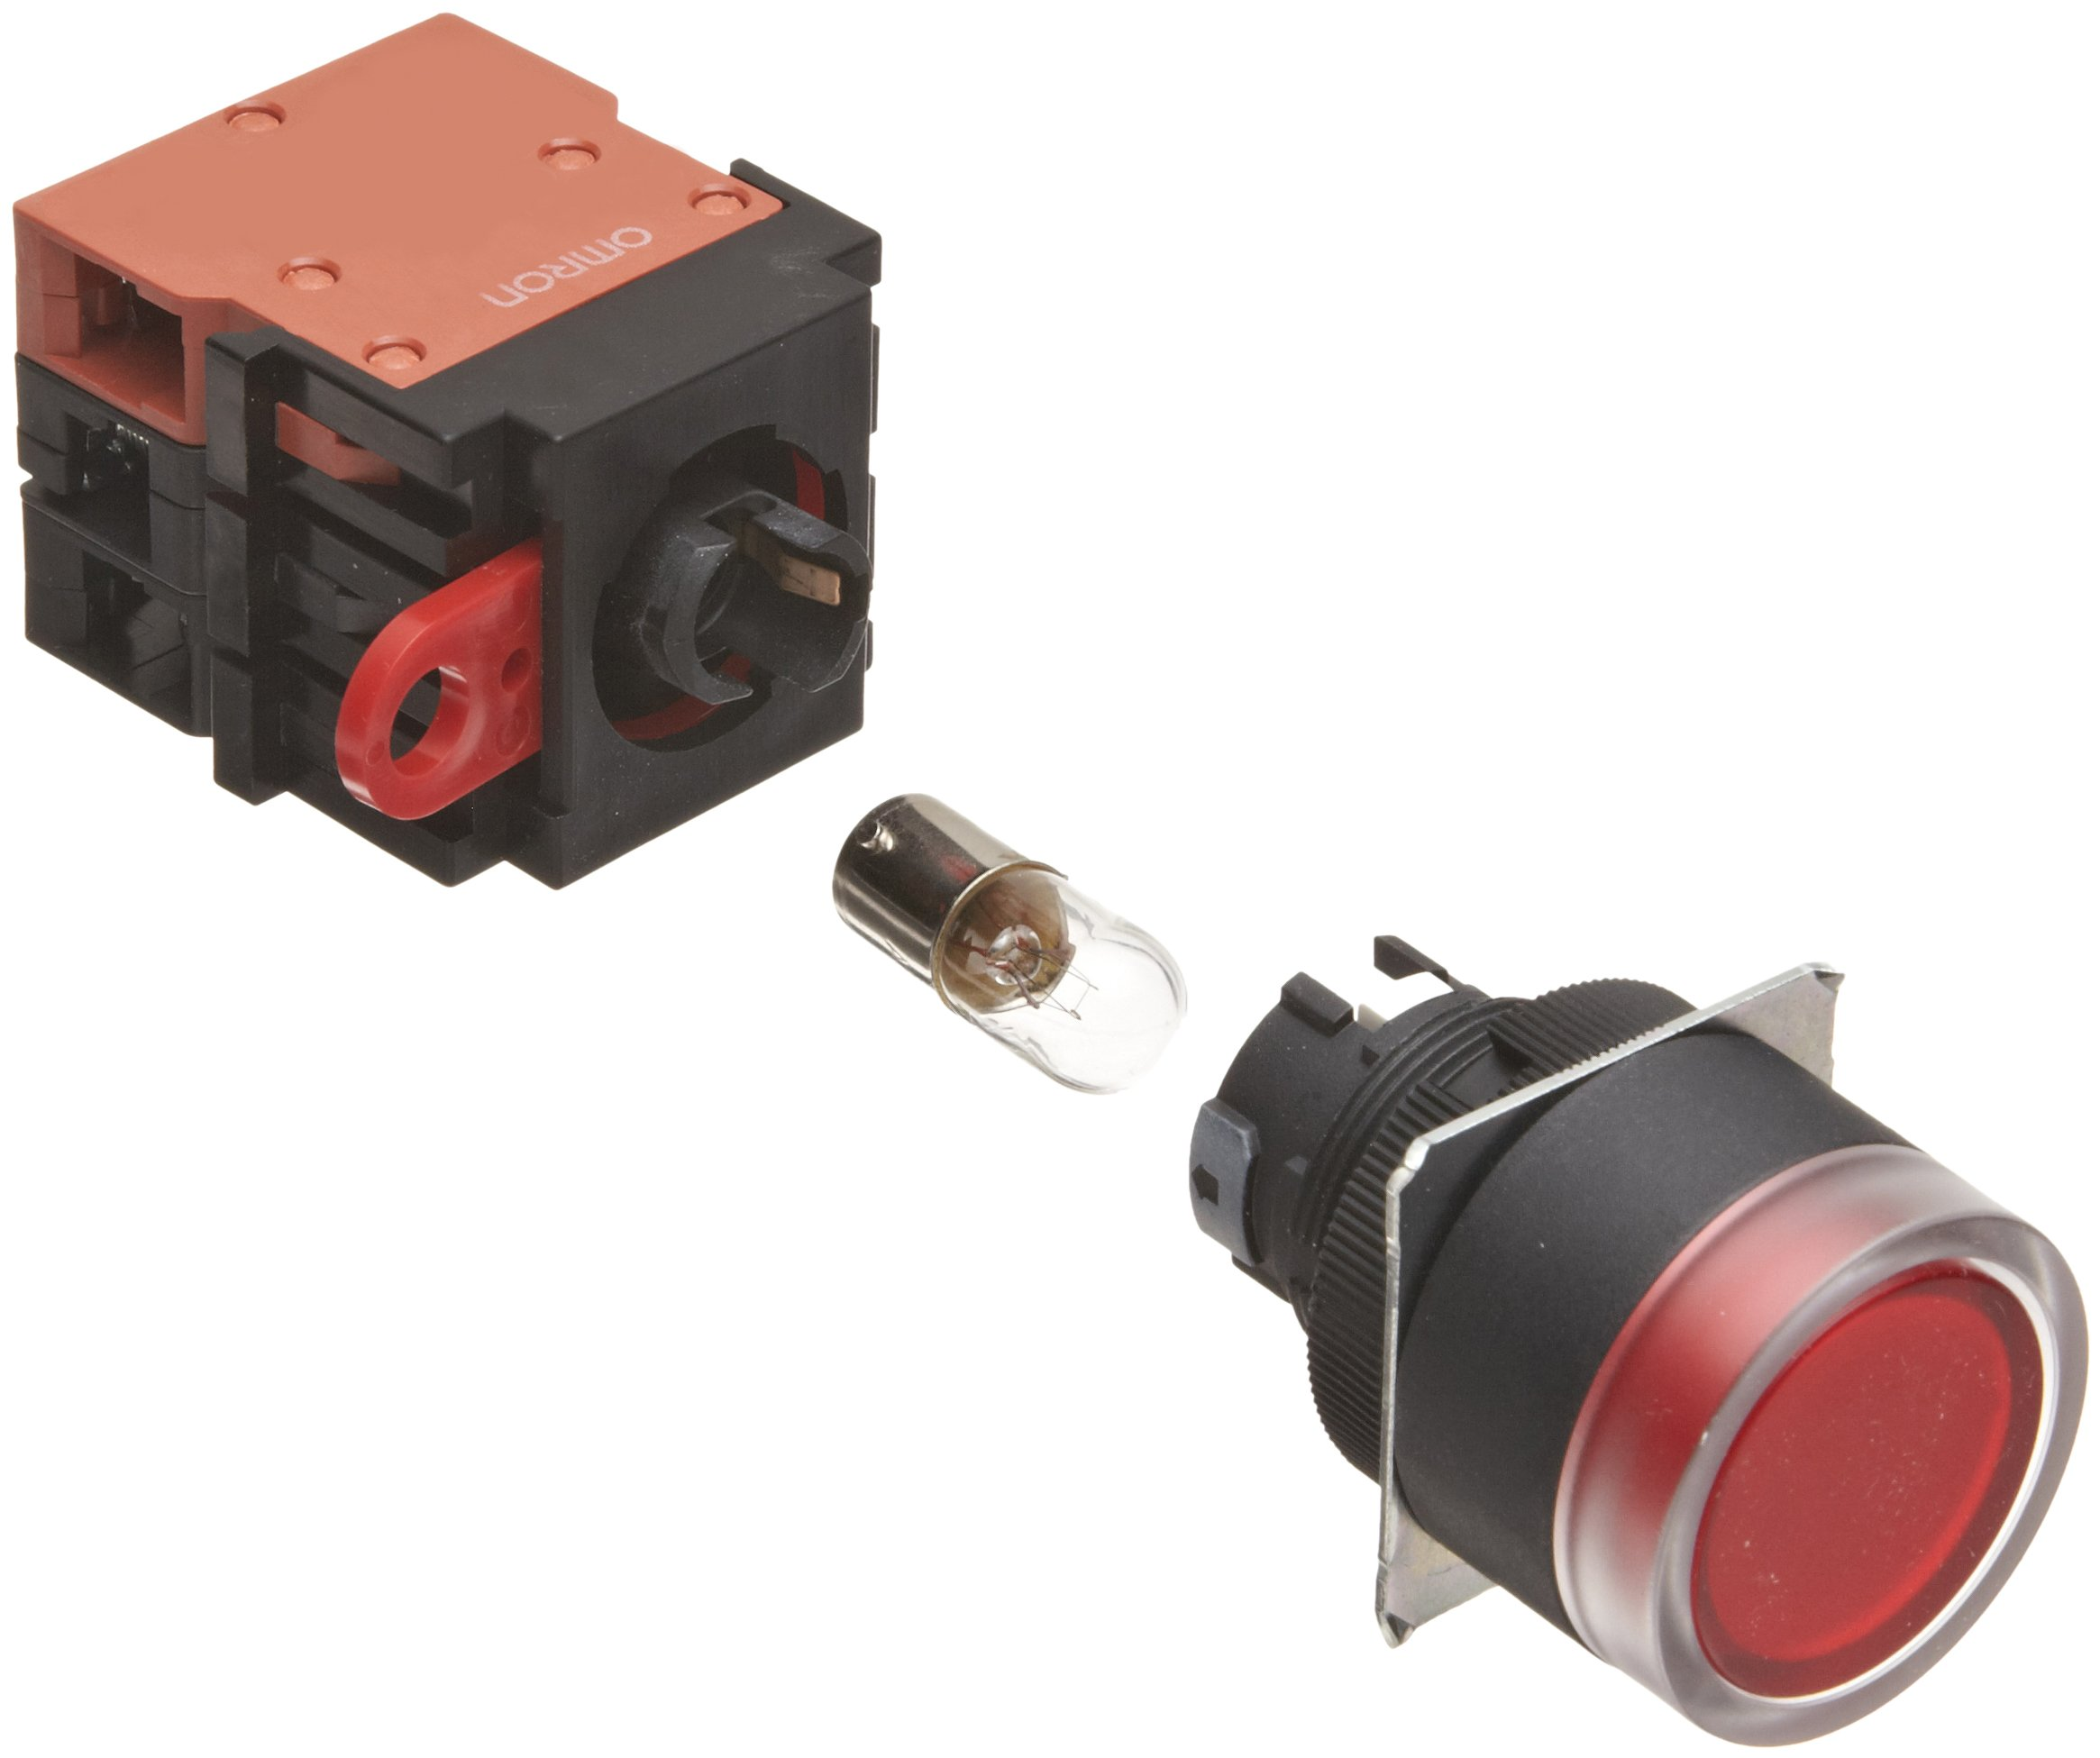 Omron A22L-GR-24-11M Full Guard Type Pushbutton and Switch, Screw Terminal, Incandescent Lighted, Momentary Operation, Round, Red, 24 VAC Rated Voltage, Single Pole Single Throw Normally Open and Single Pole Single Throw Normally Closed Contacts